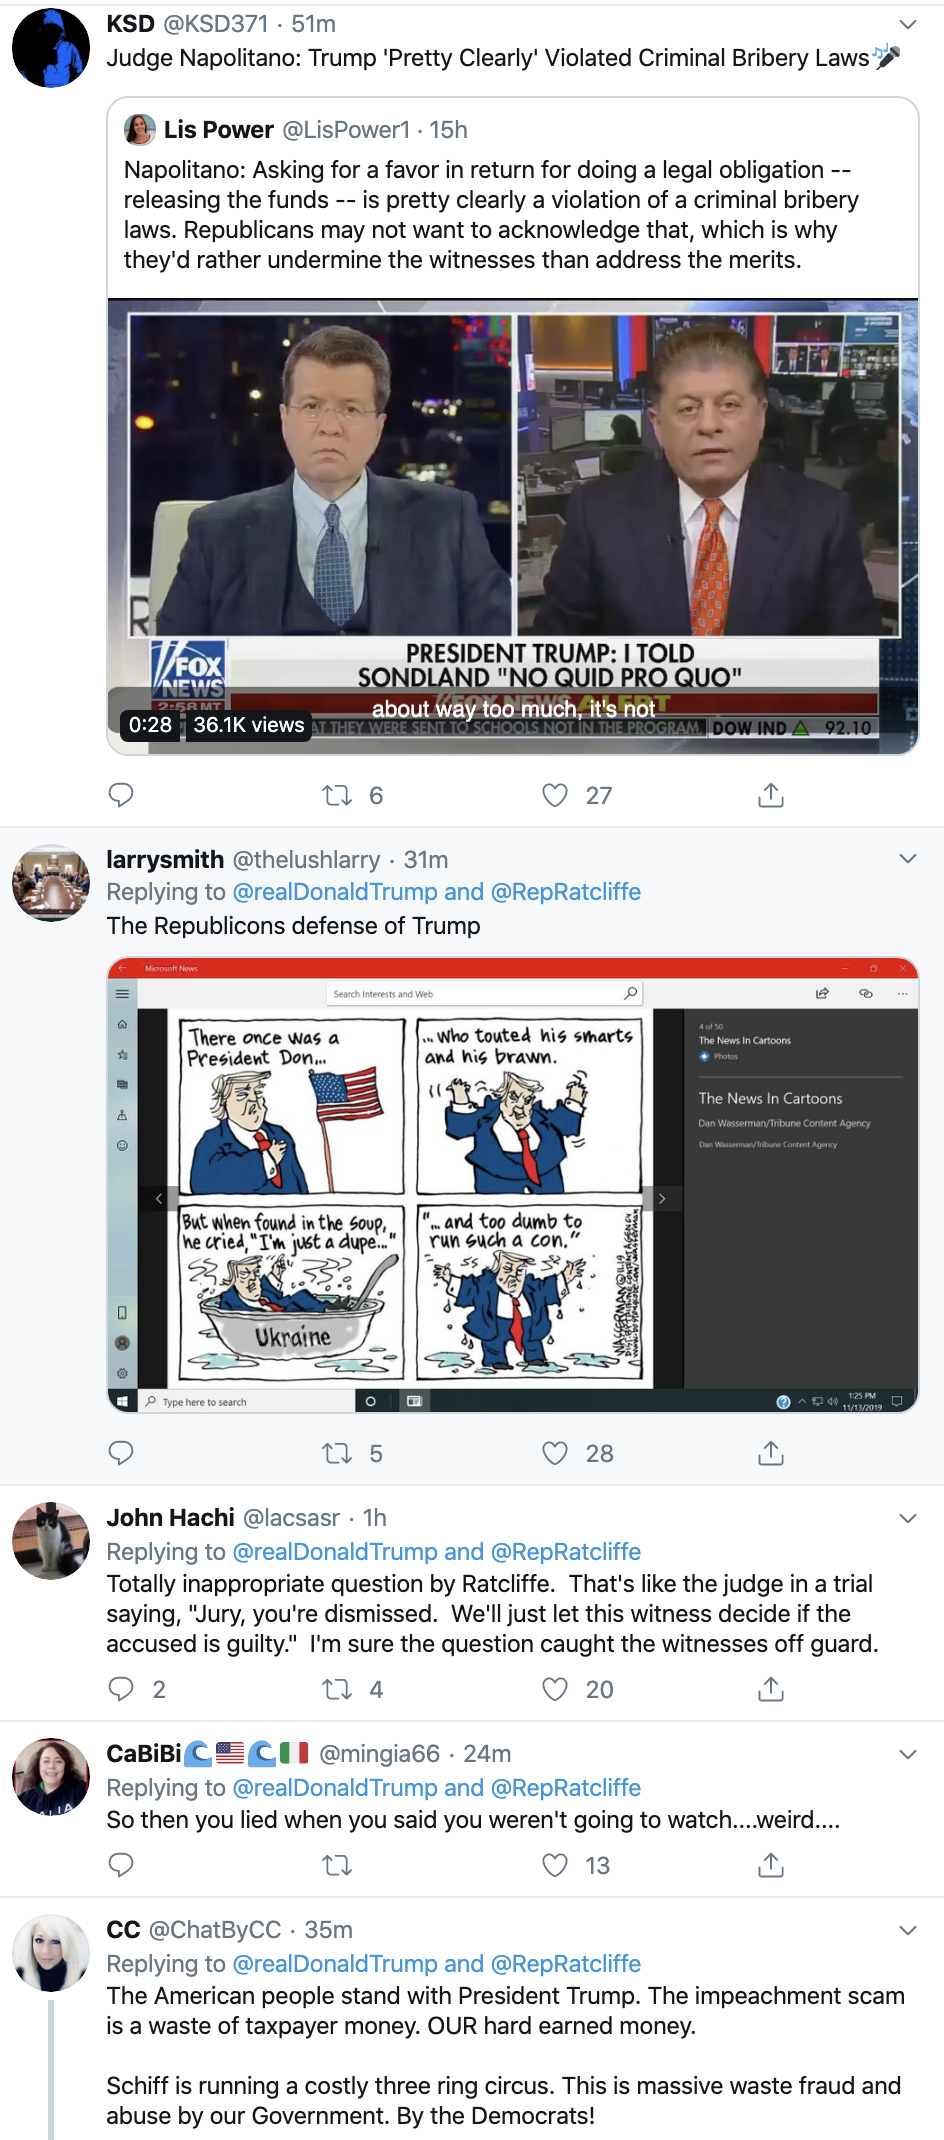 Screen-Shot-2019-11-14-at-7.19.11-AM Trump Goes On Pre-Dawn Conspiracy-Laden Twitter Spree Conspiracy Theory Corruption Crime Domestic Policy Donald Trump Election 2016 Election 2020 Featured Foreign Policy History Impeachment Investigation Military National Security Politics Russia Television Top Stories War